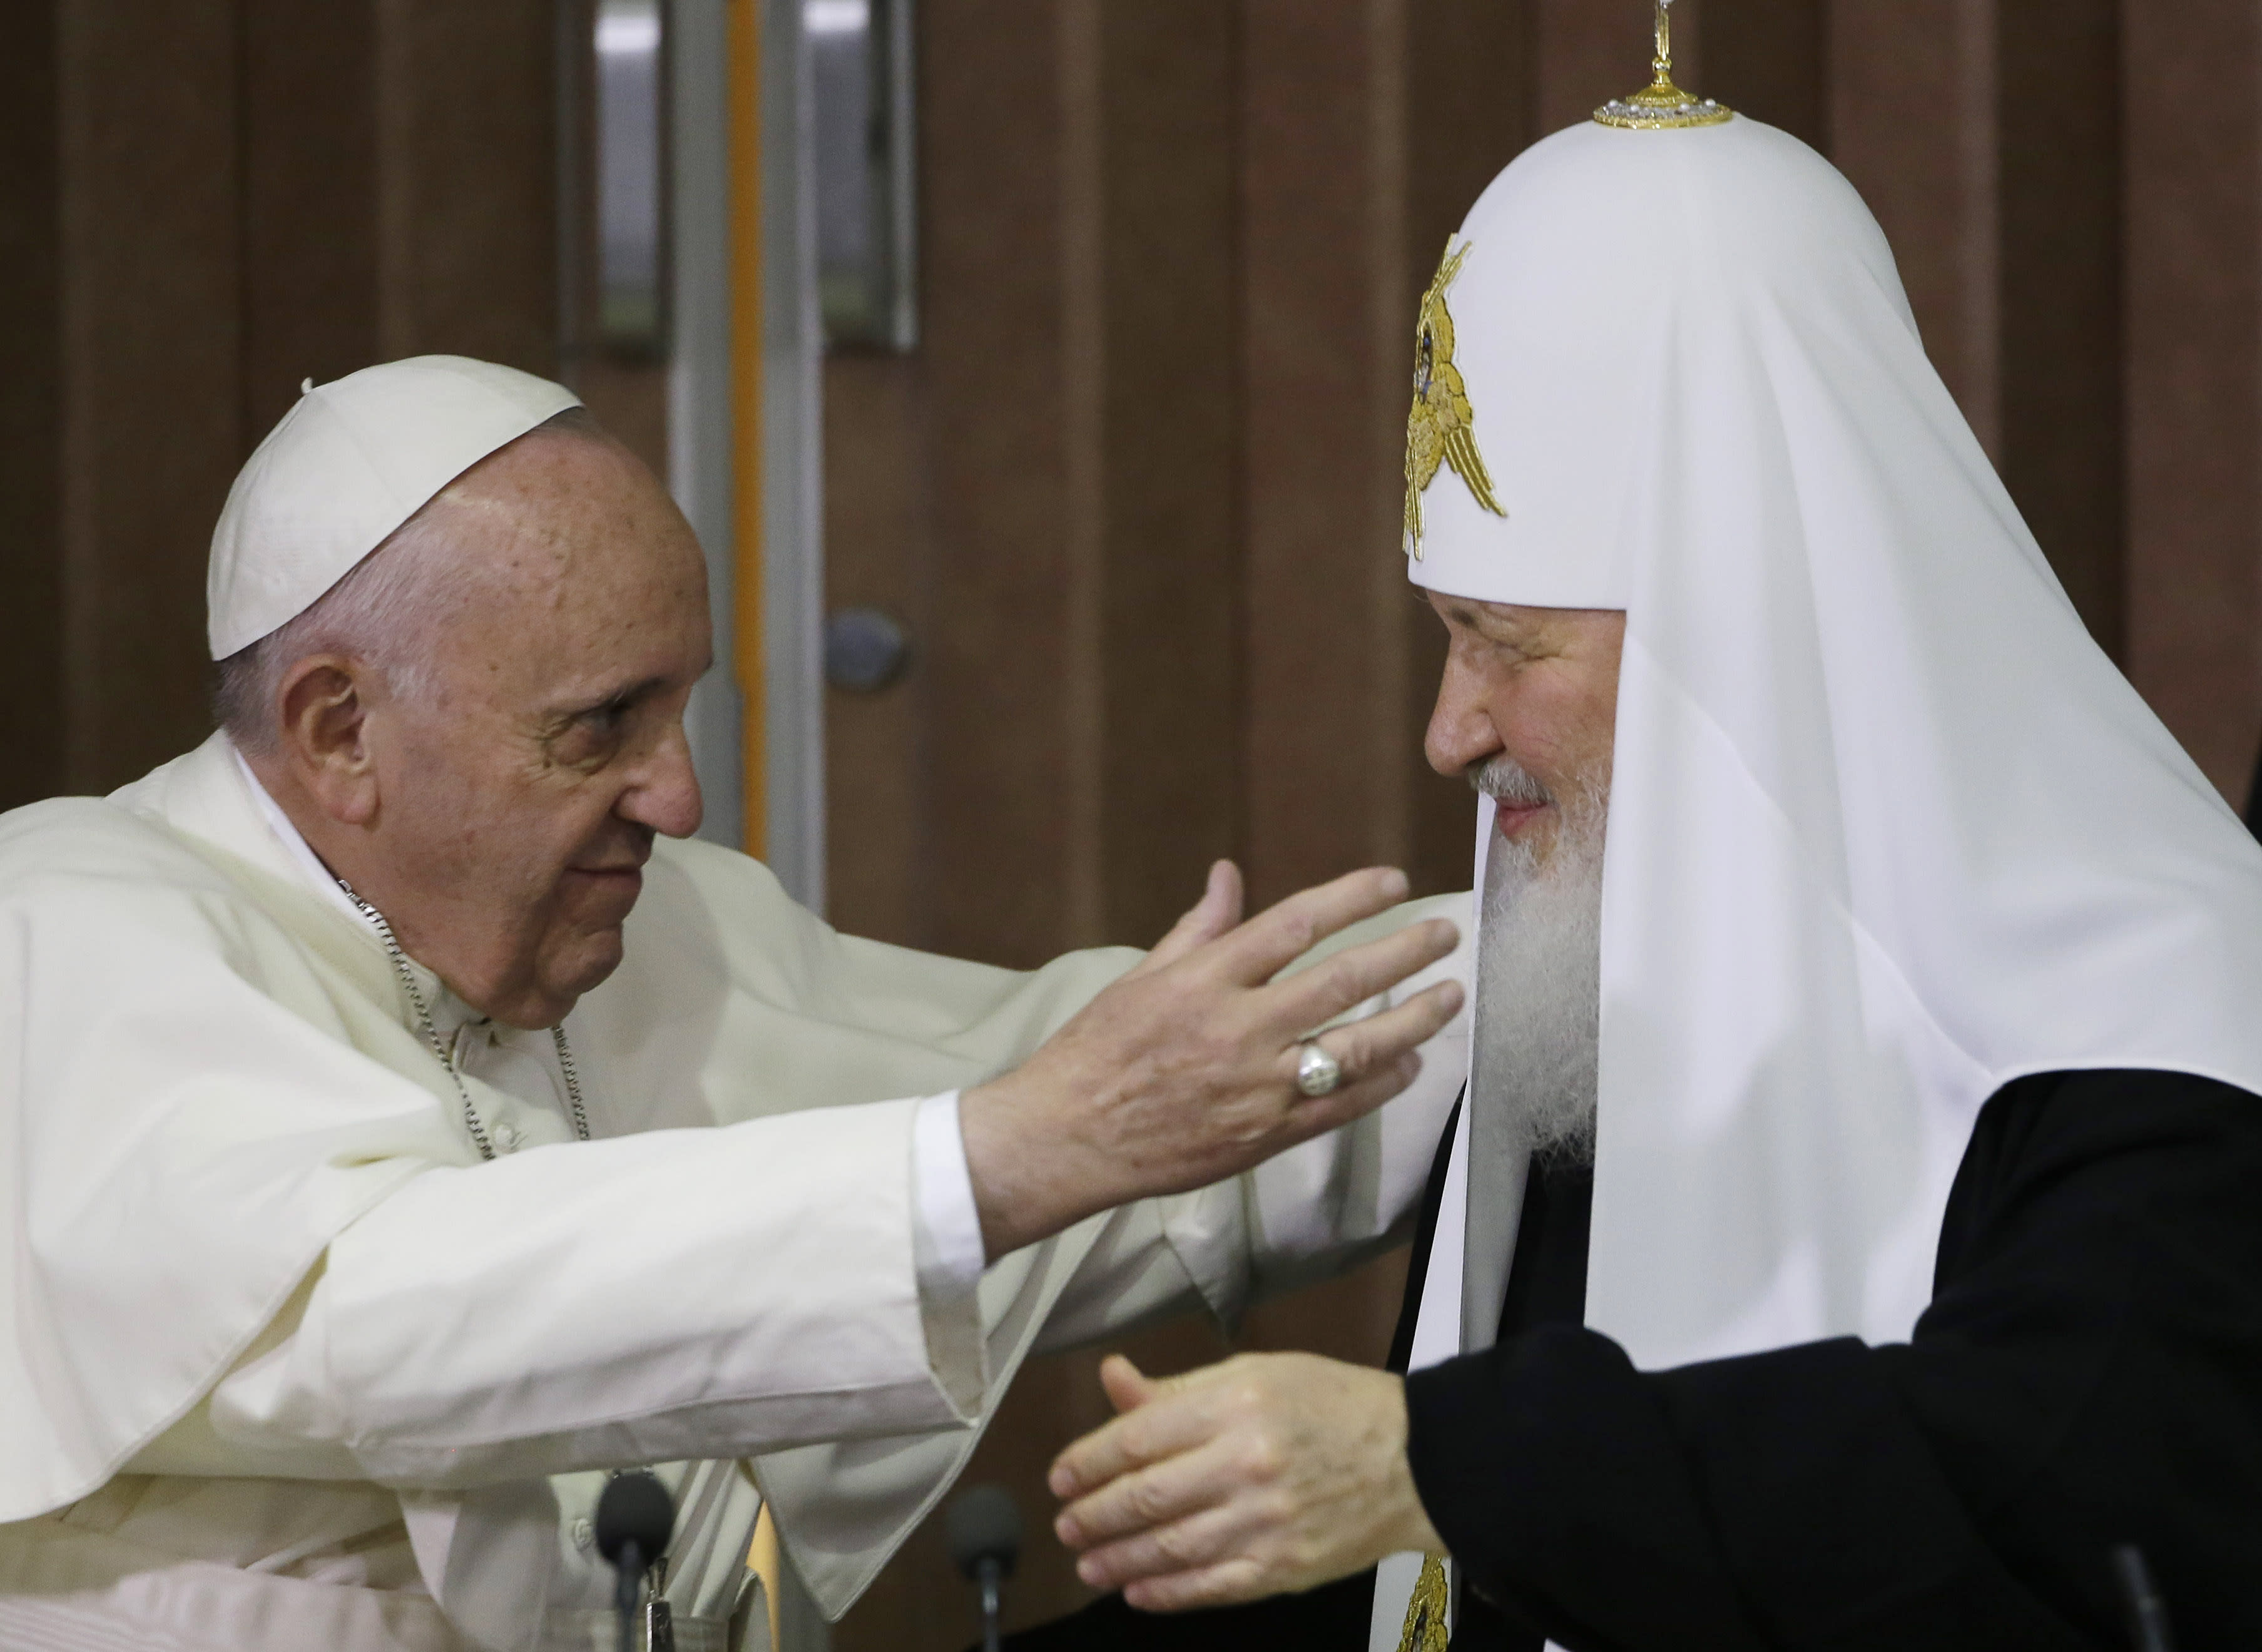 'Finally:' Pope meets Russian Orthodox leader